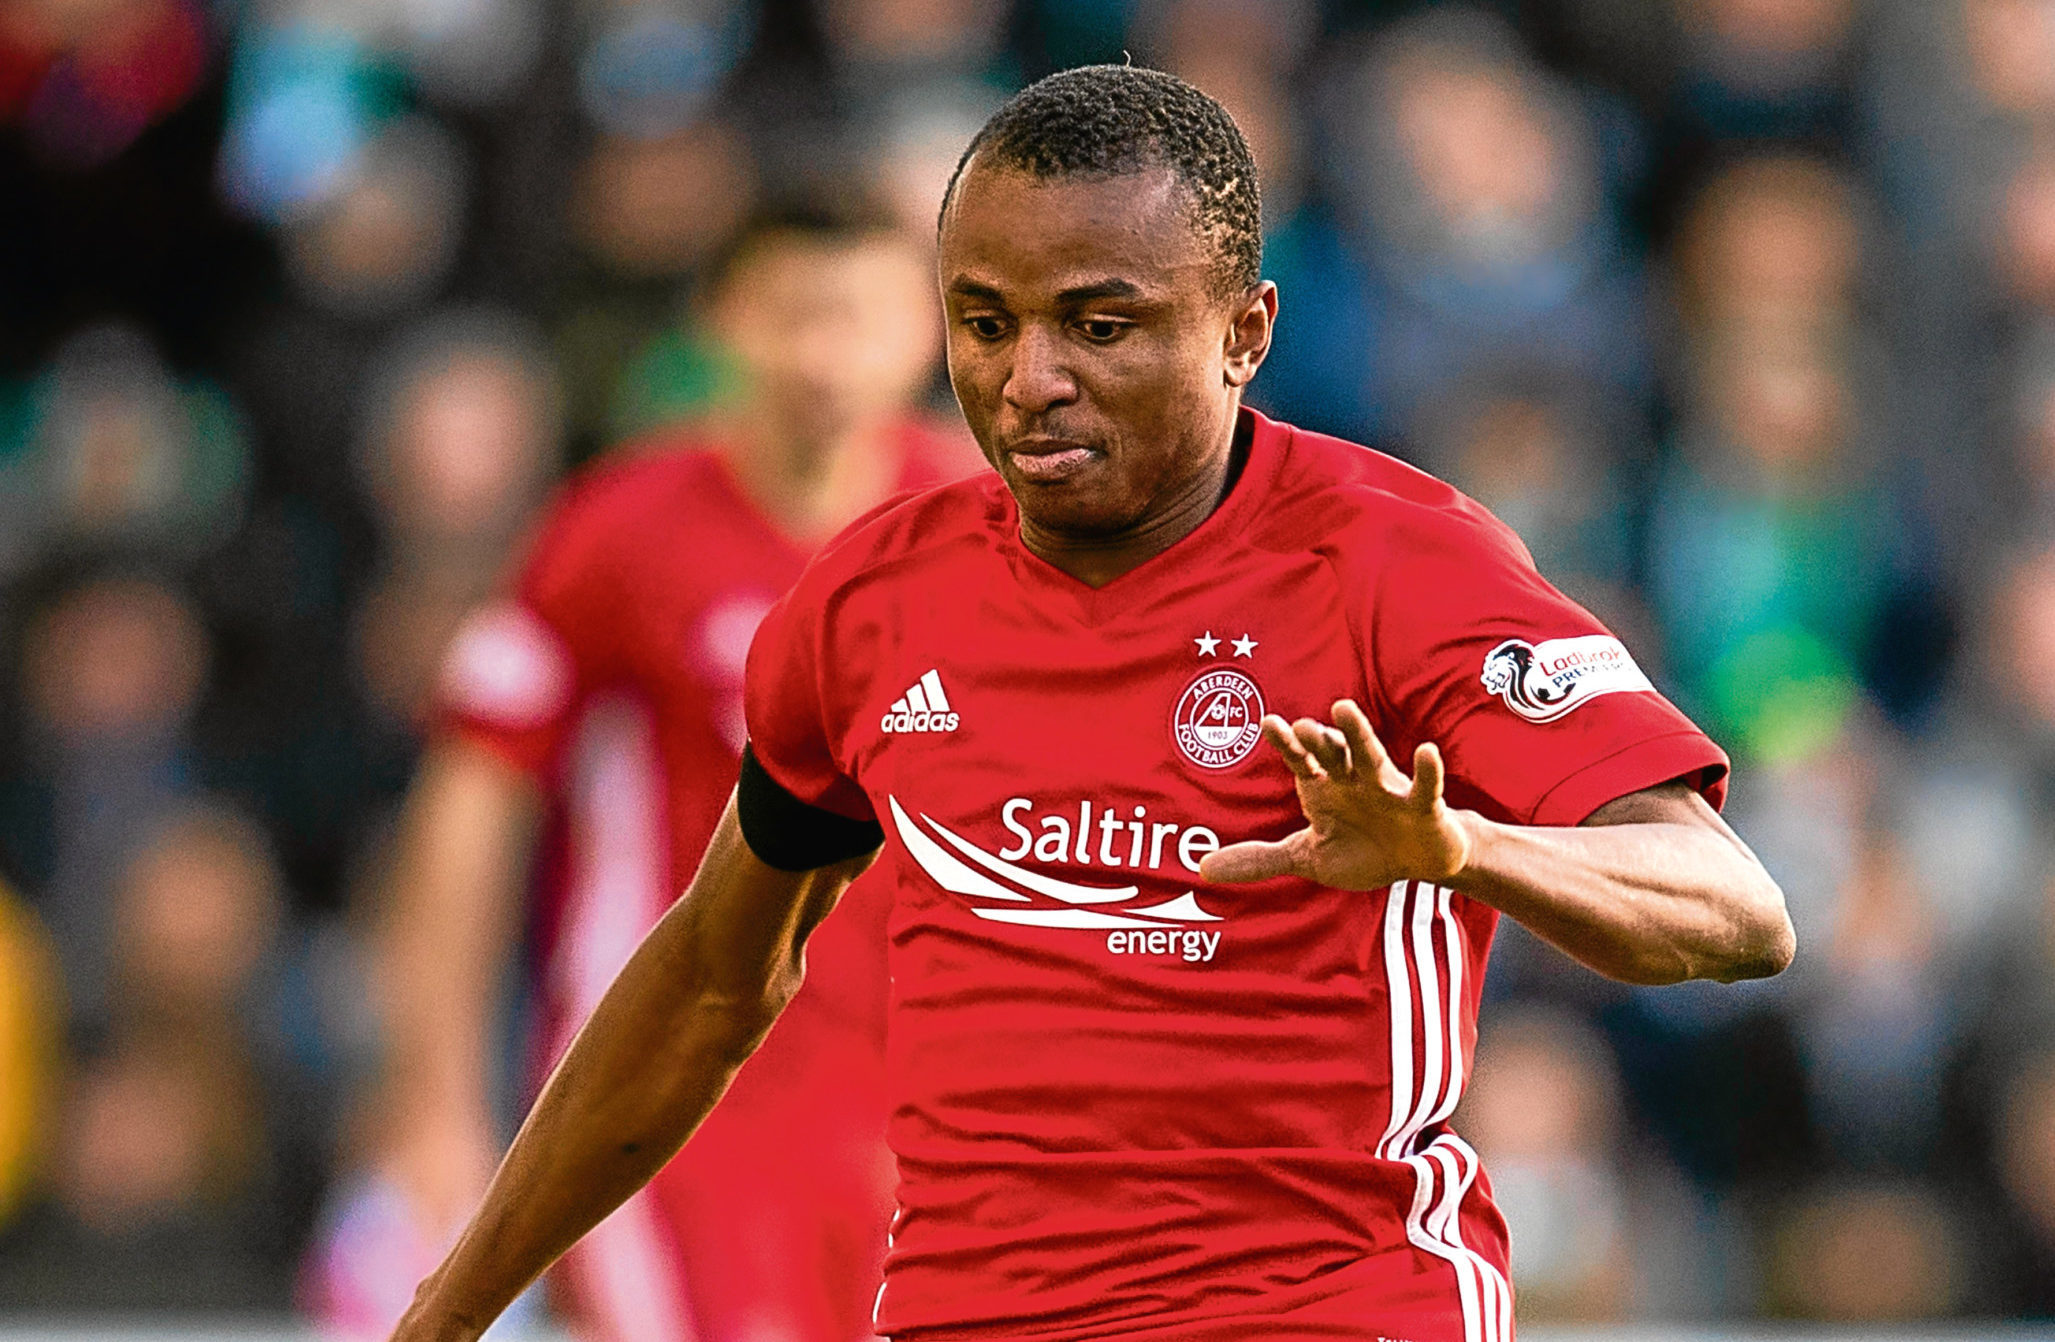 Chidi Nwakali in action for Aberdeen.